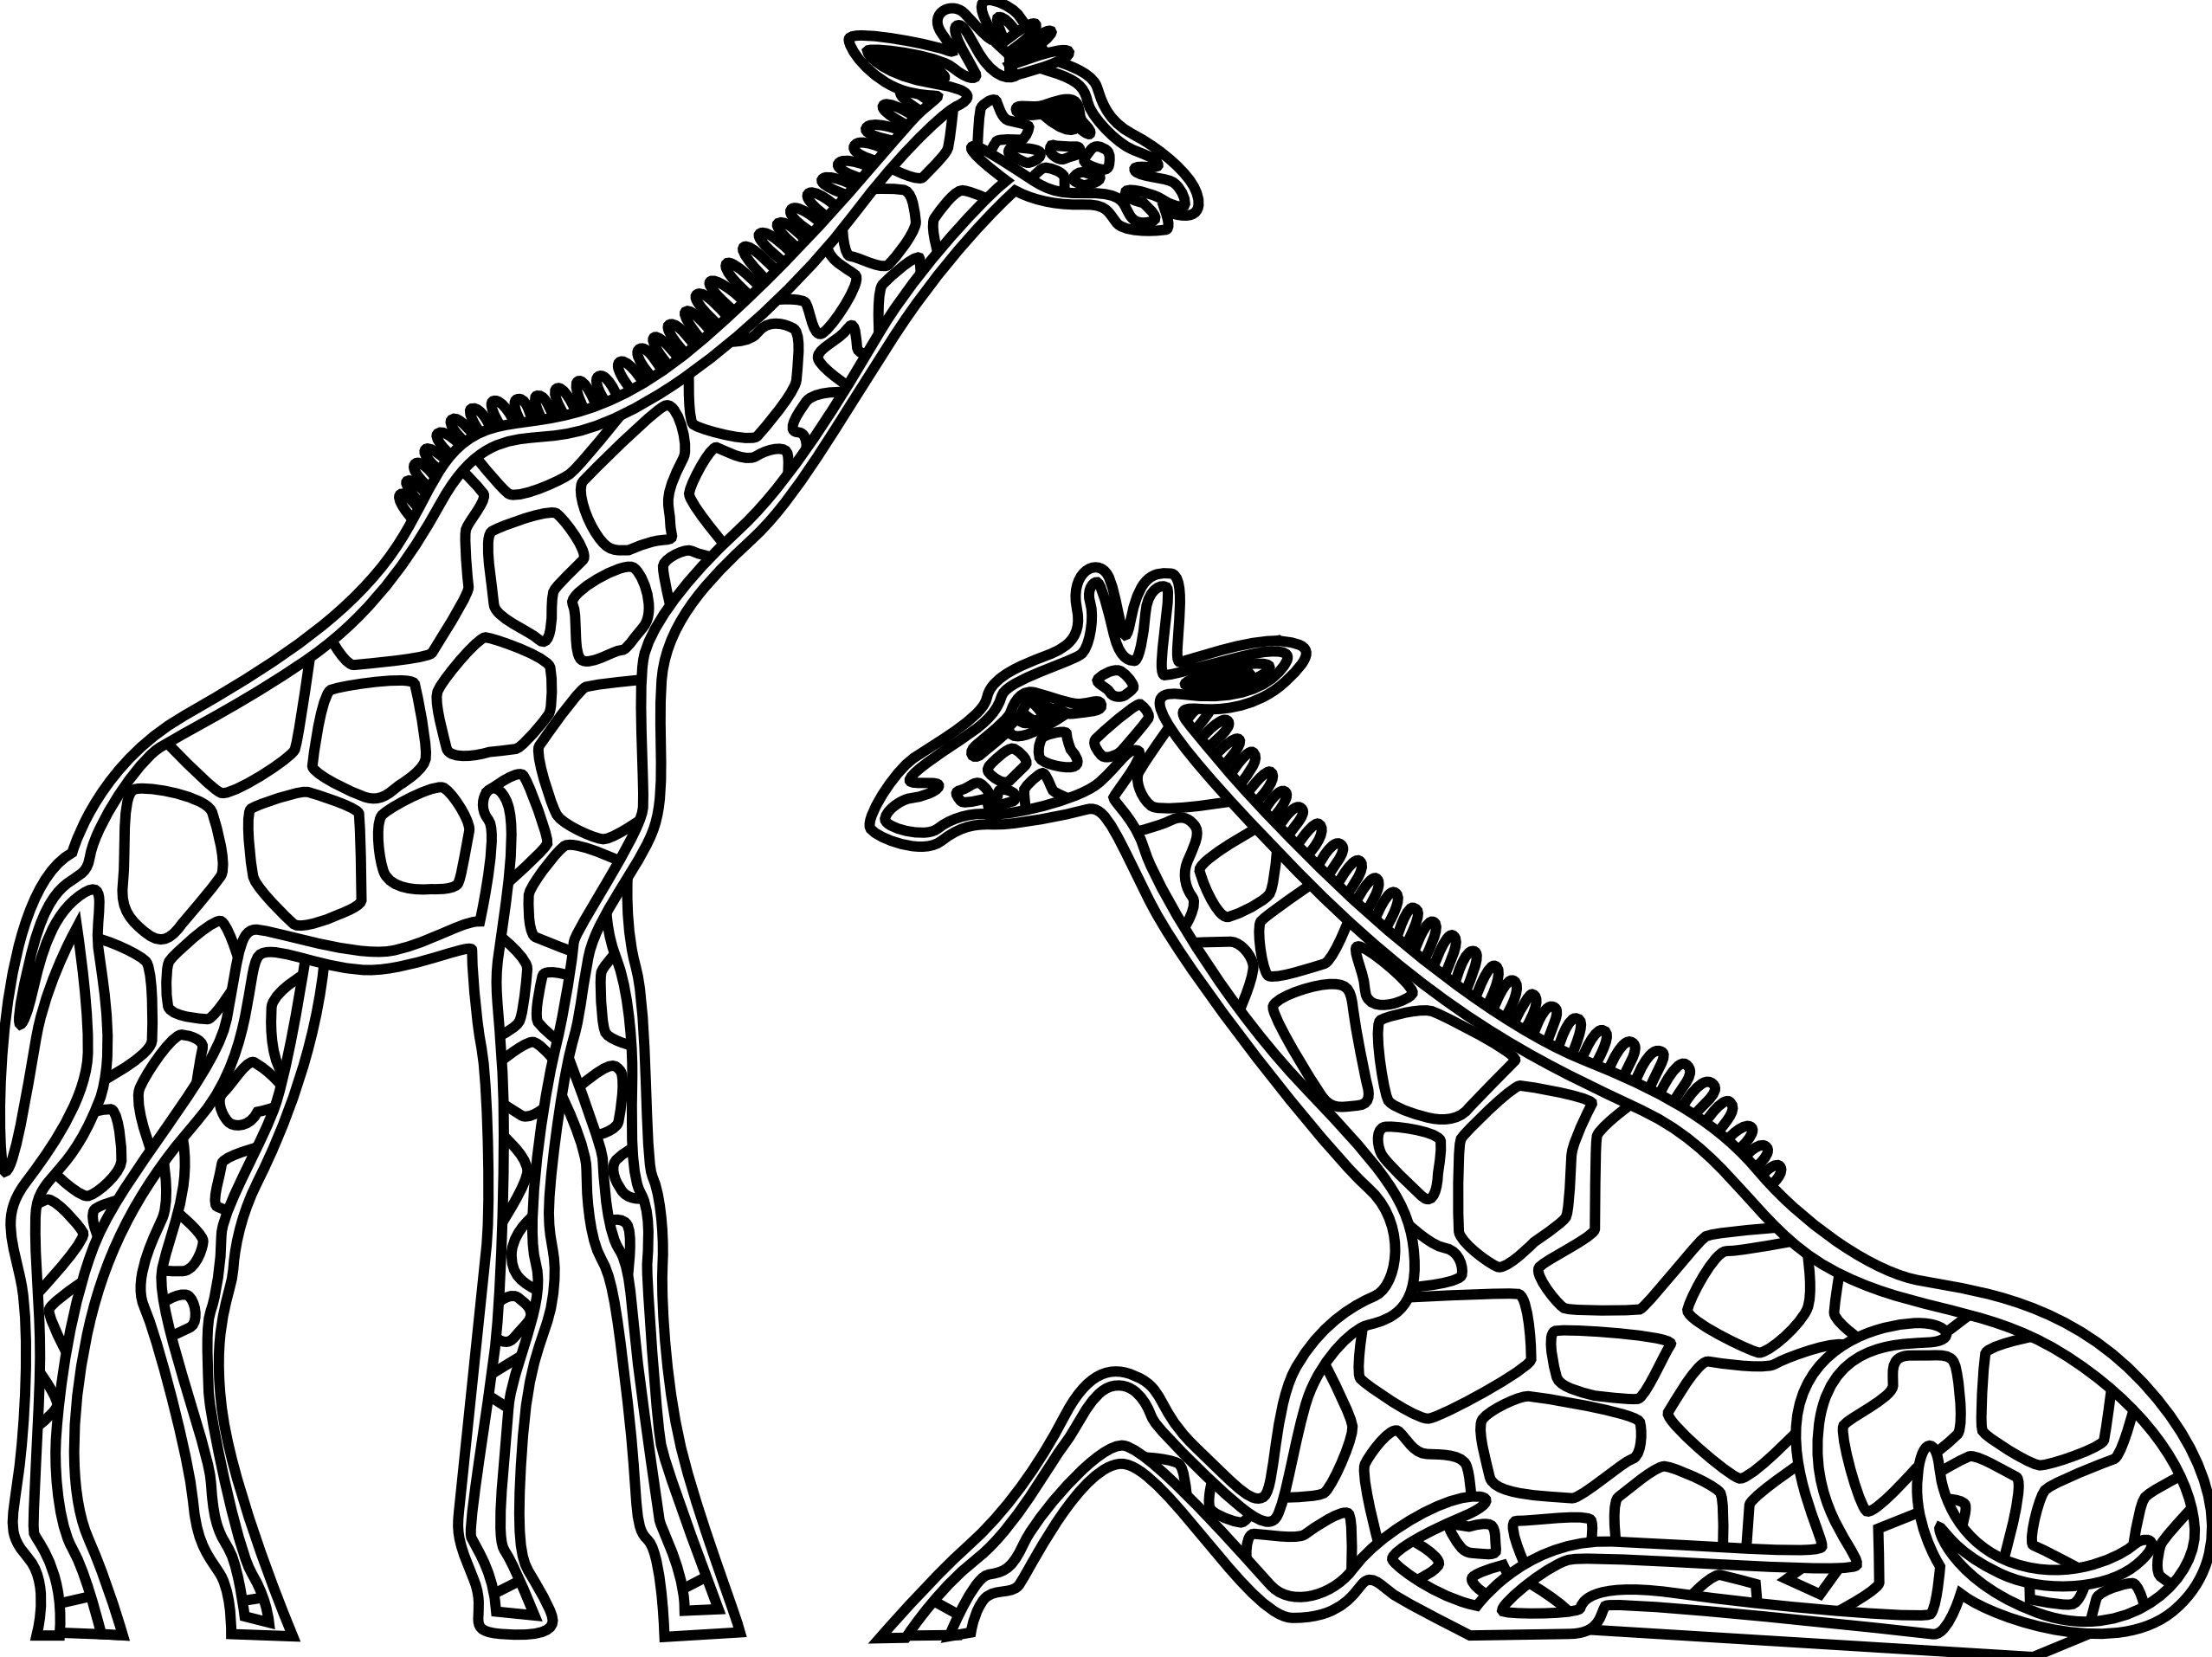 Black and white clipart giraffe svg black and white library Giraffe clipart black and white 5 » Clipart Station svg black and white library